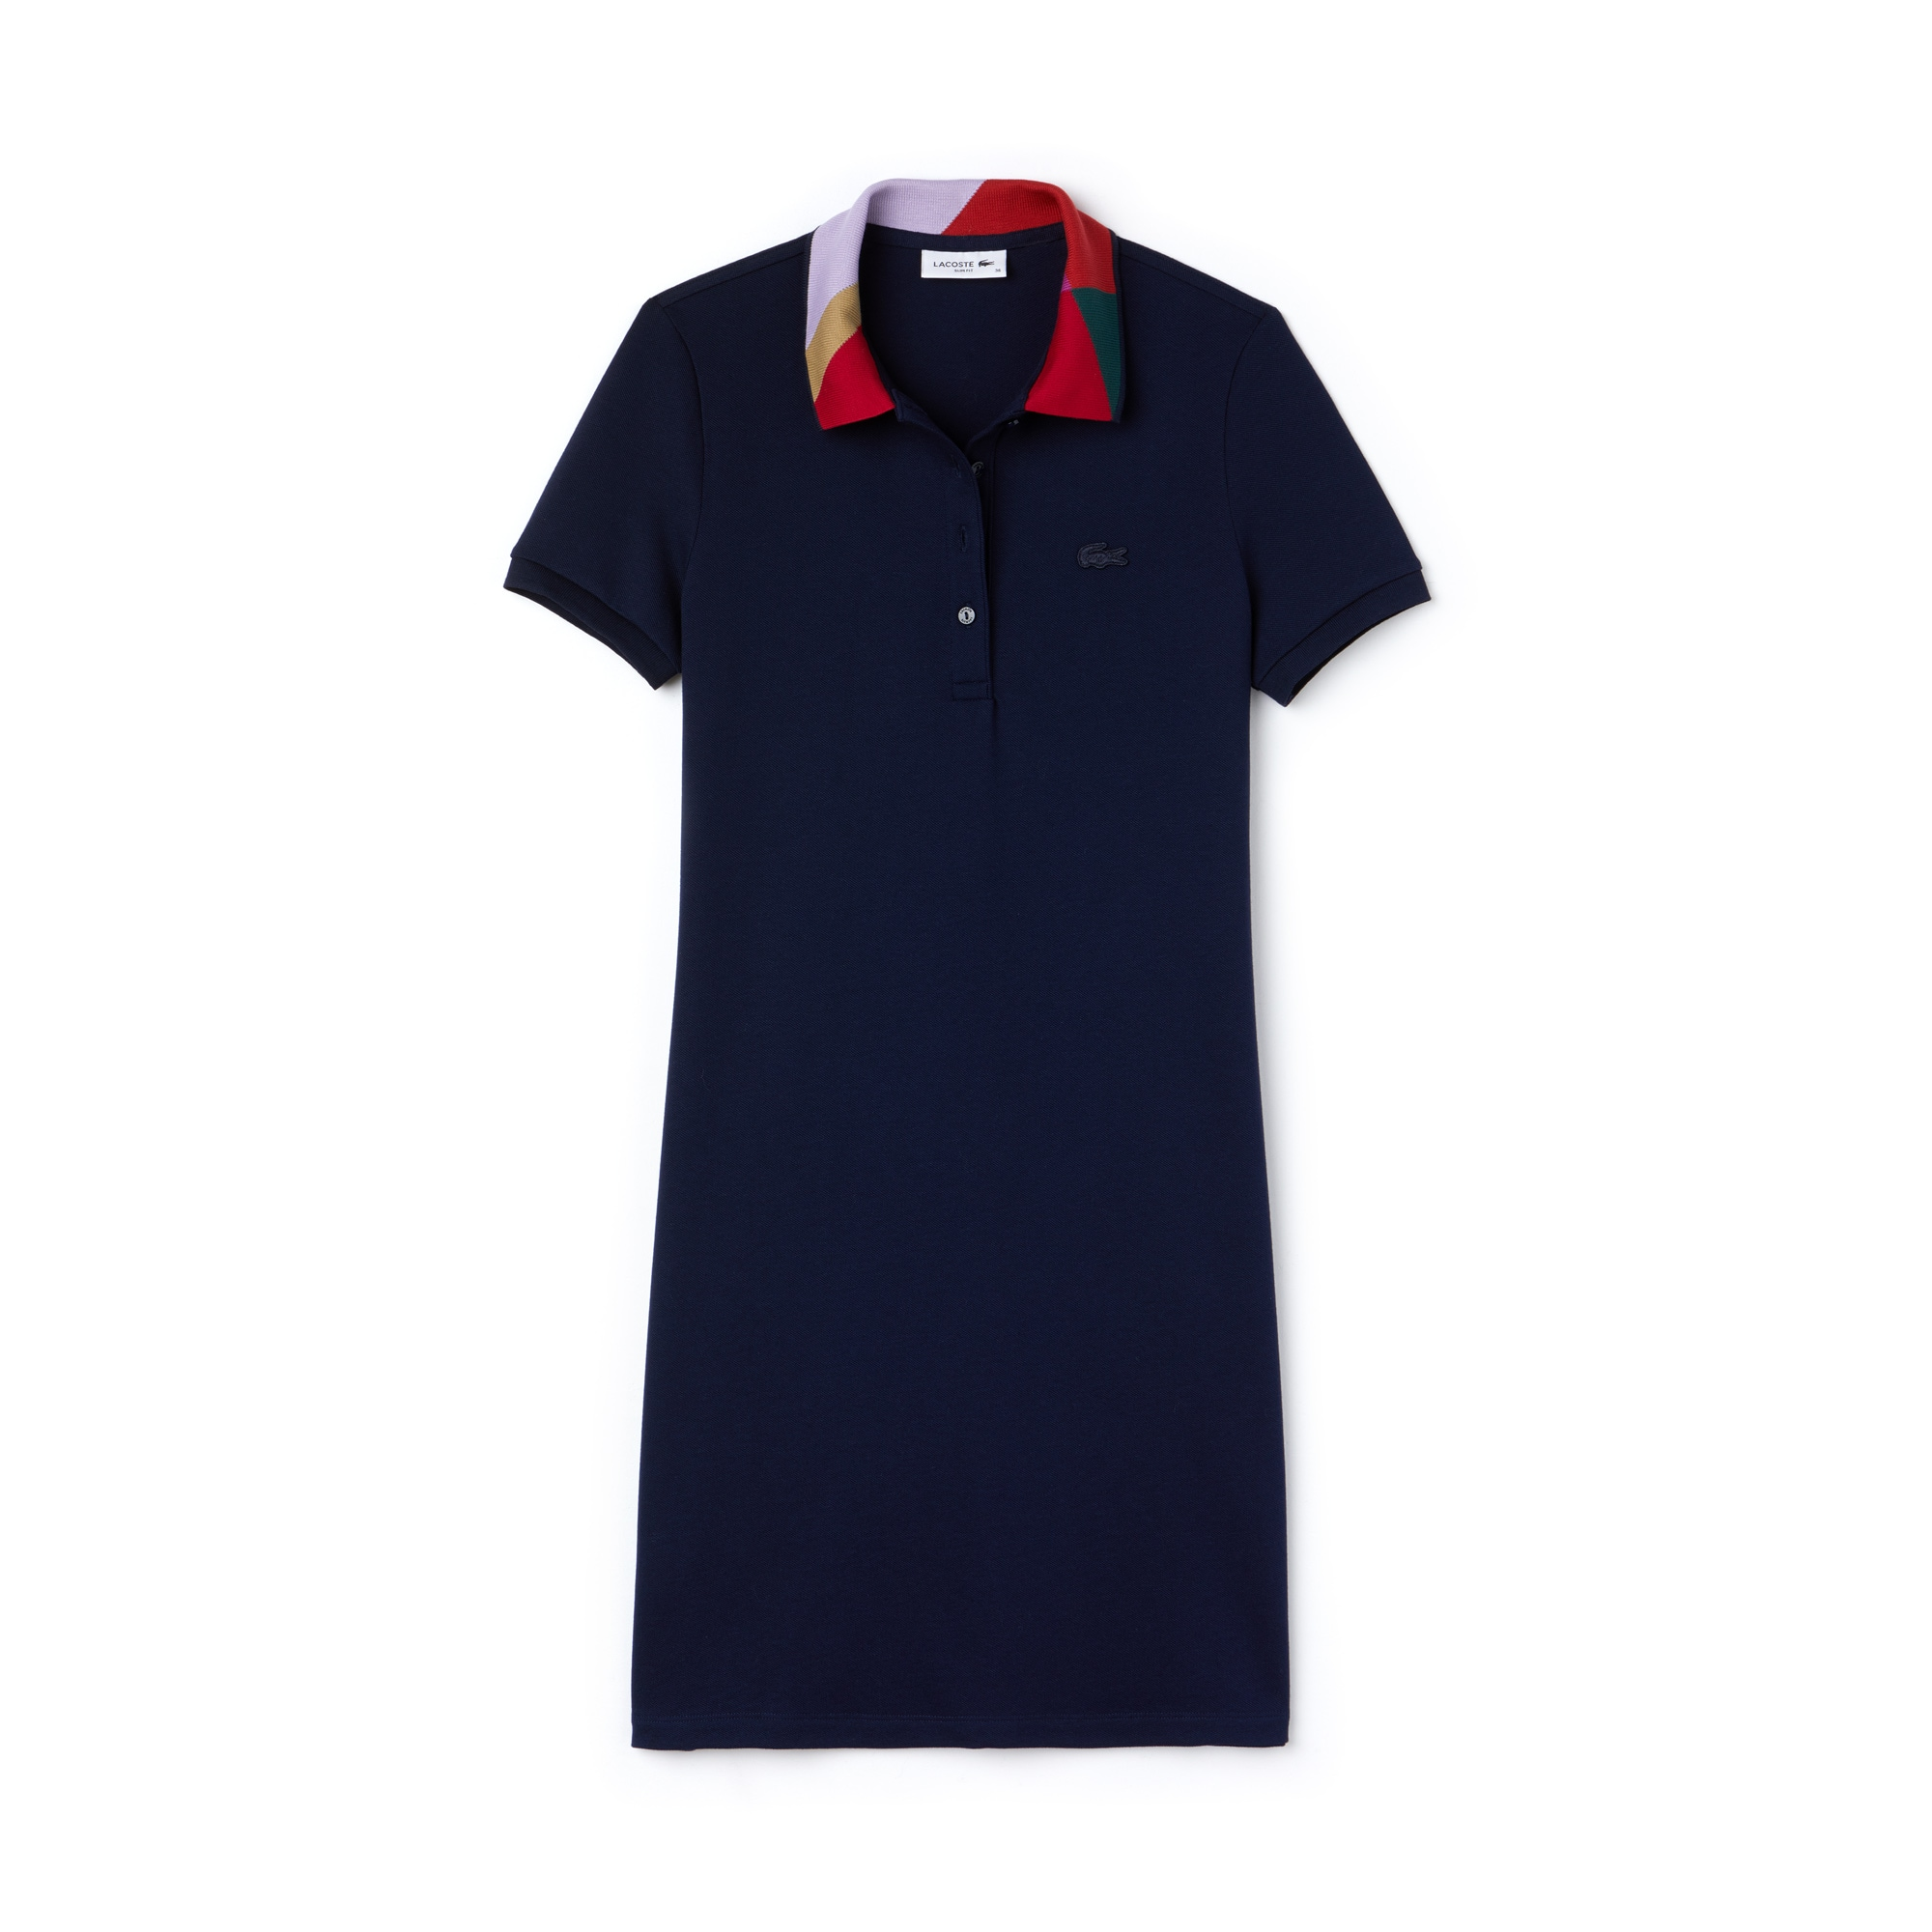 Lacoste - Damen Slim Fit Polokleid aus Mini-Piqué mit Colorblocks - 3